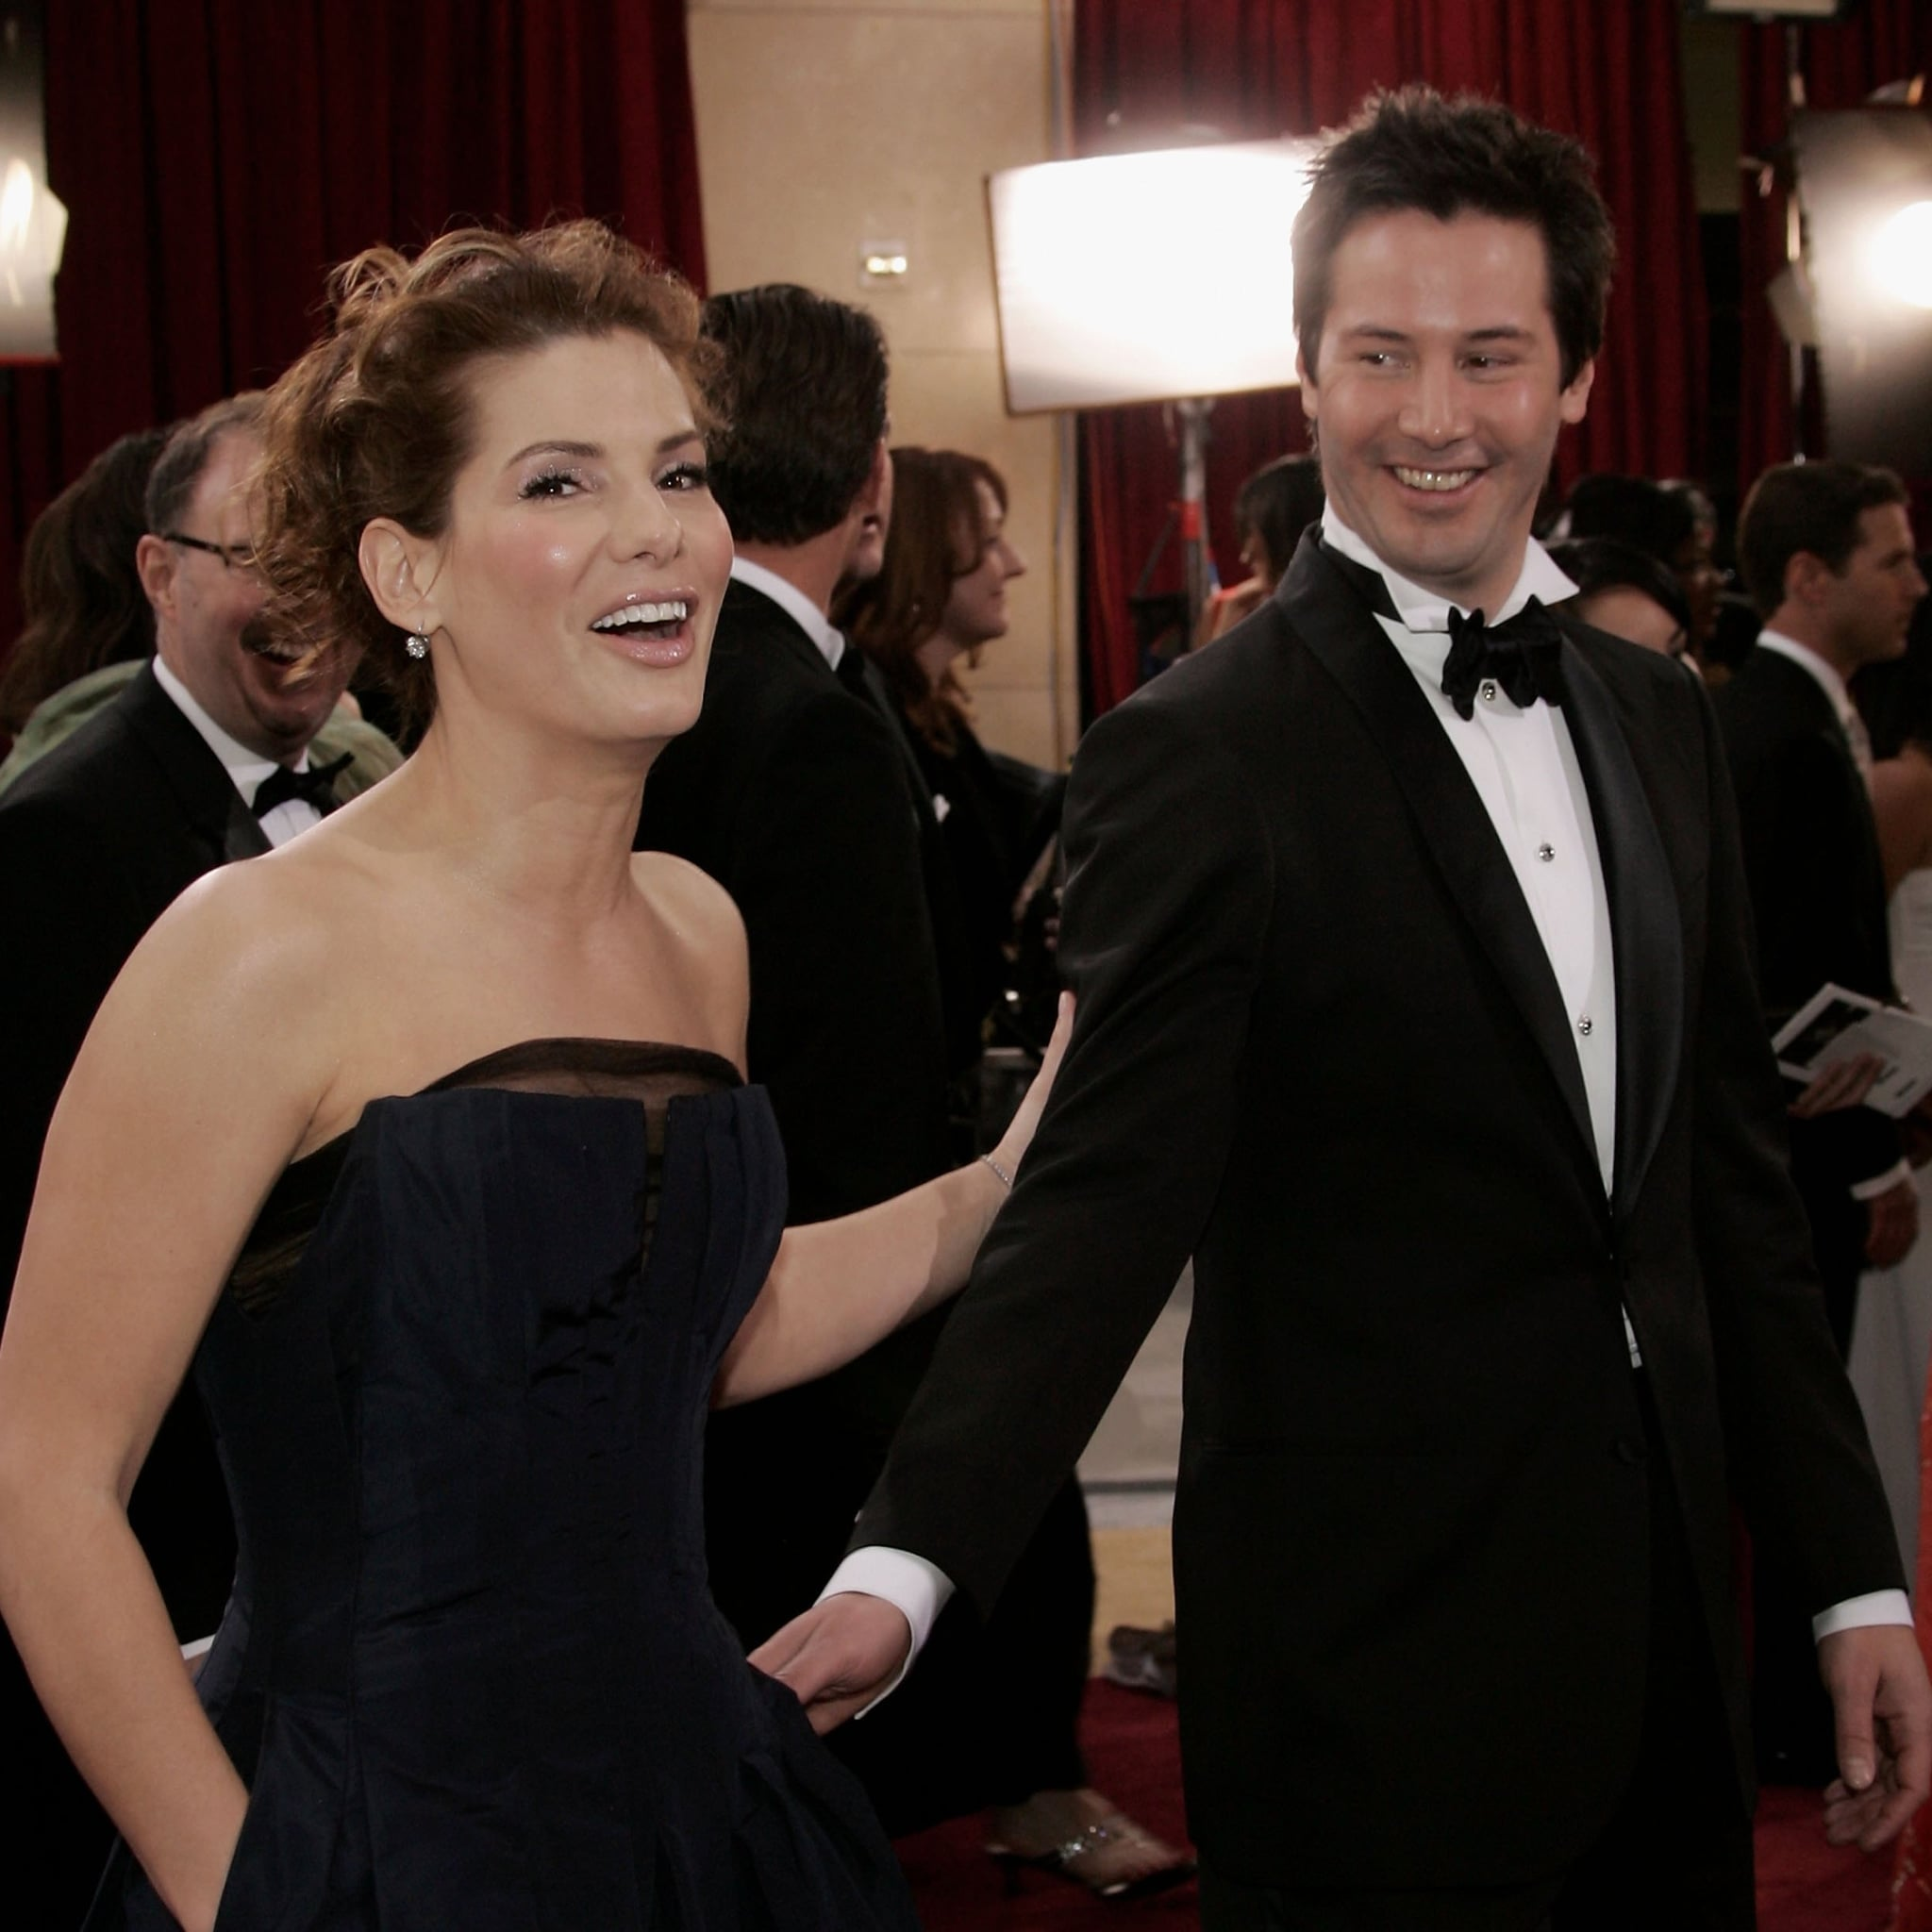 Sofia Coppola | Who Has Keanu Reeves Dated? | POPSUGAR